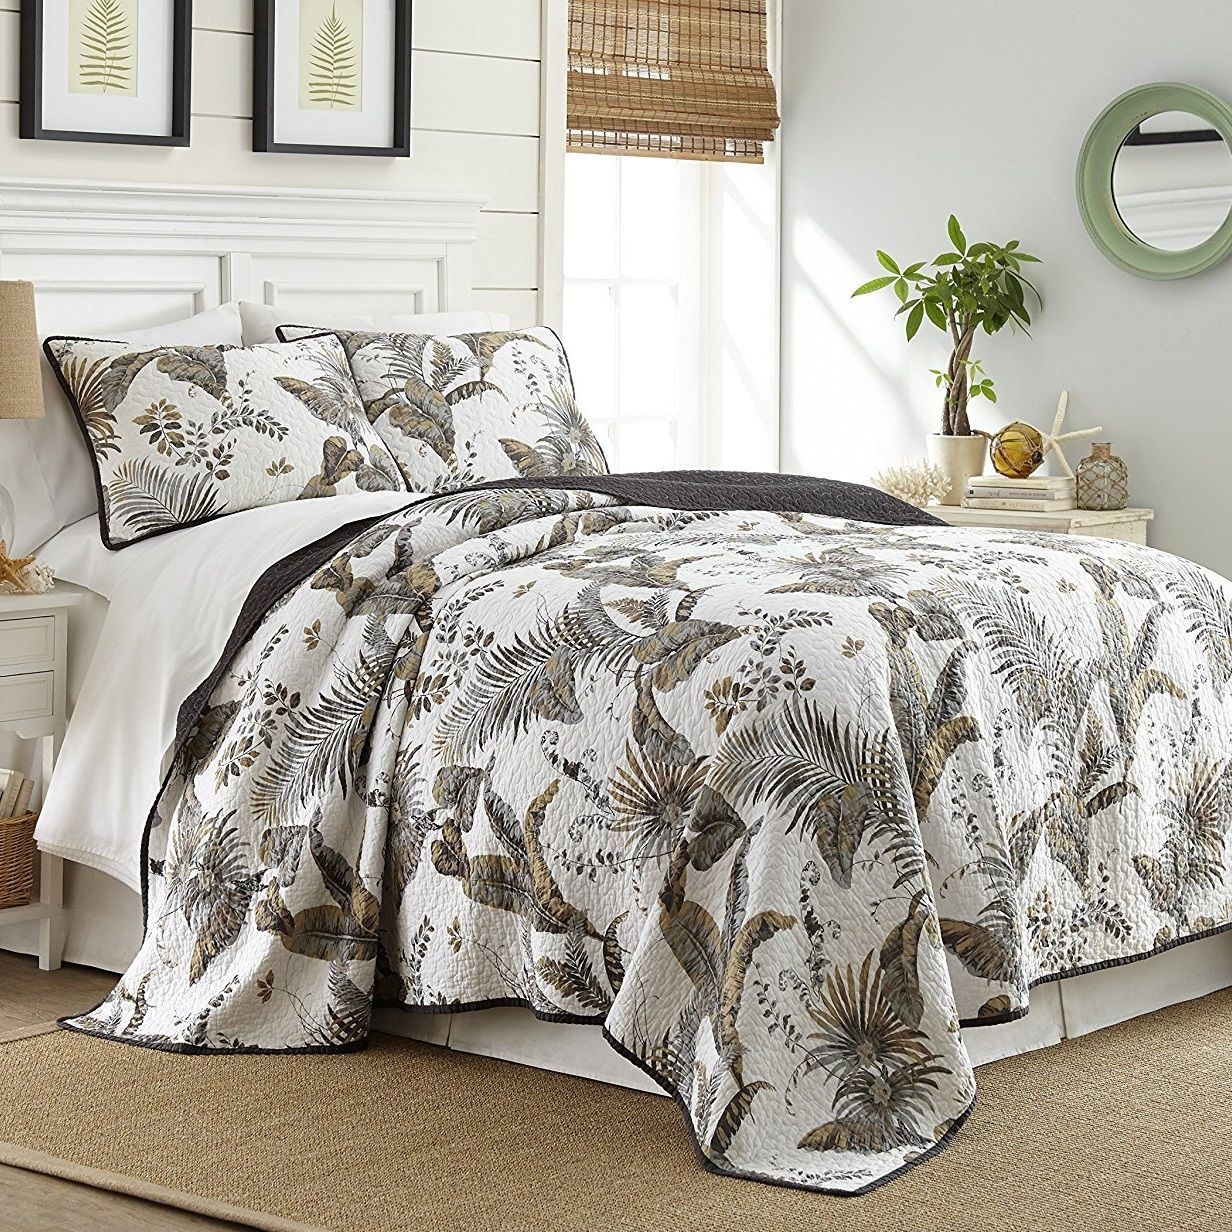 comforters for twin beyond bed bedspreads quilts quilt bath sale xl comforter white down and